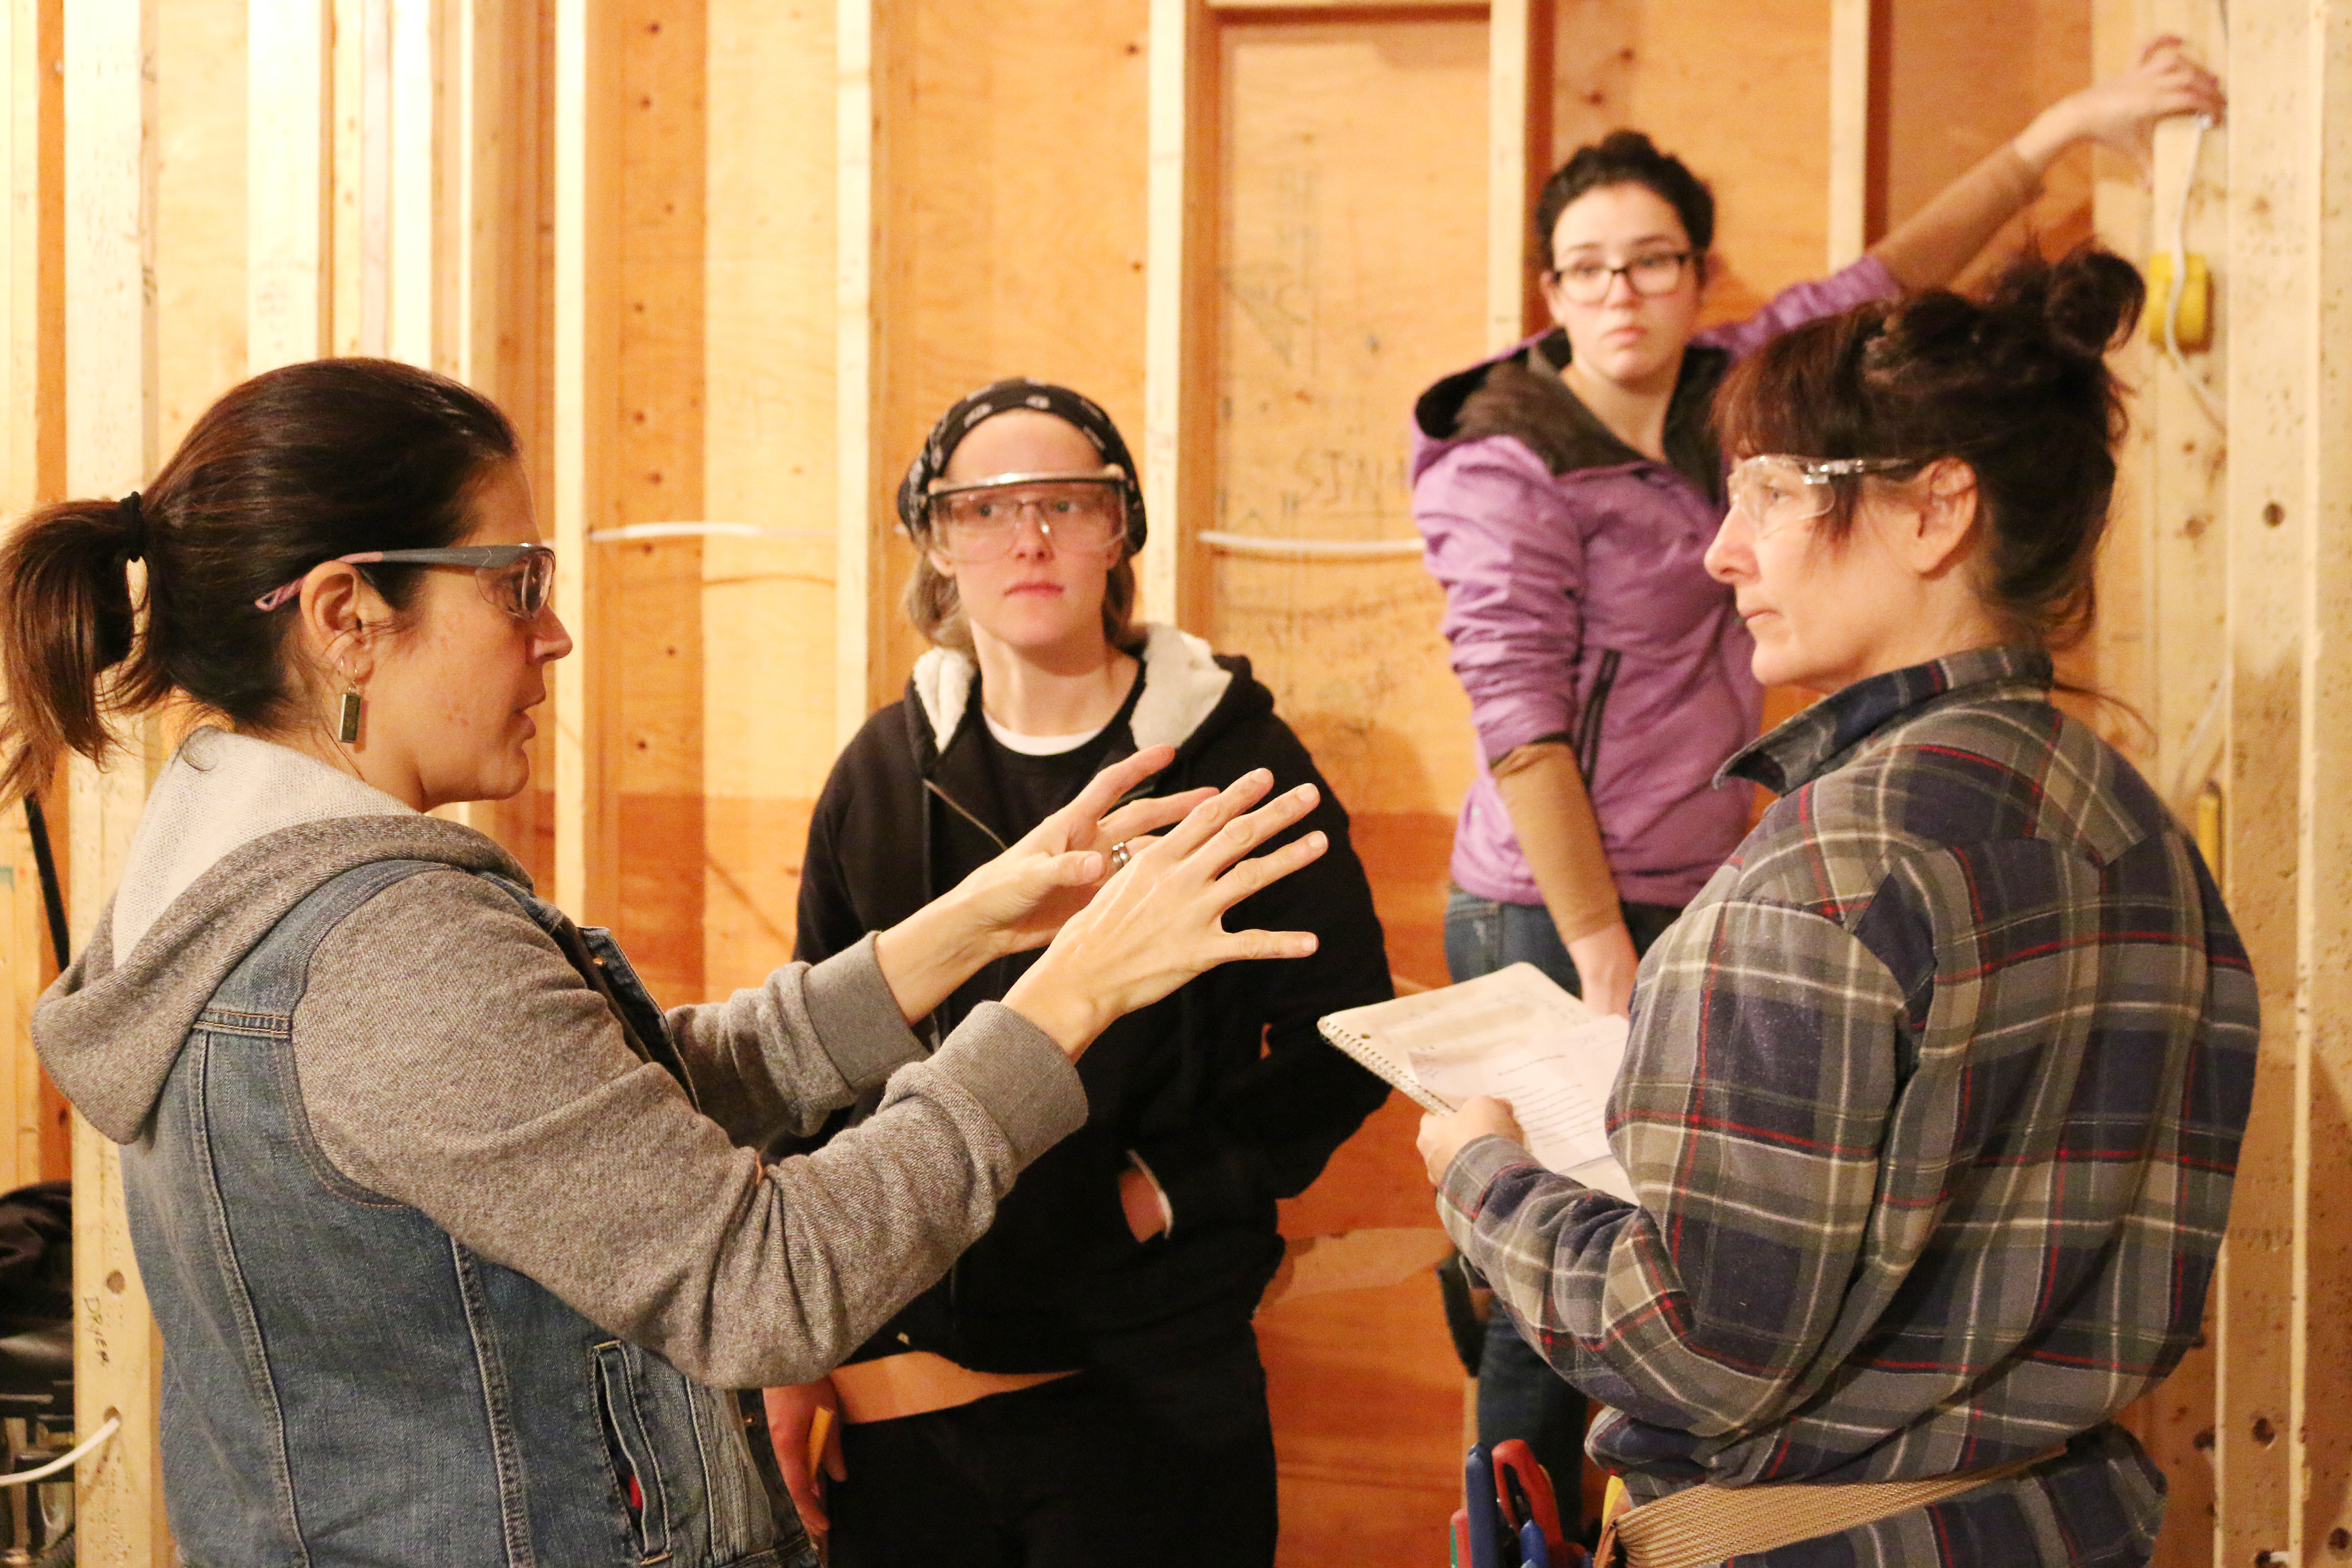 Julie-Claire Hamilton instructs women taking part in the Trades Discovery Program for Women.